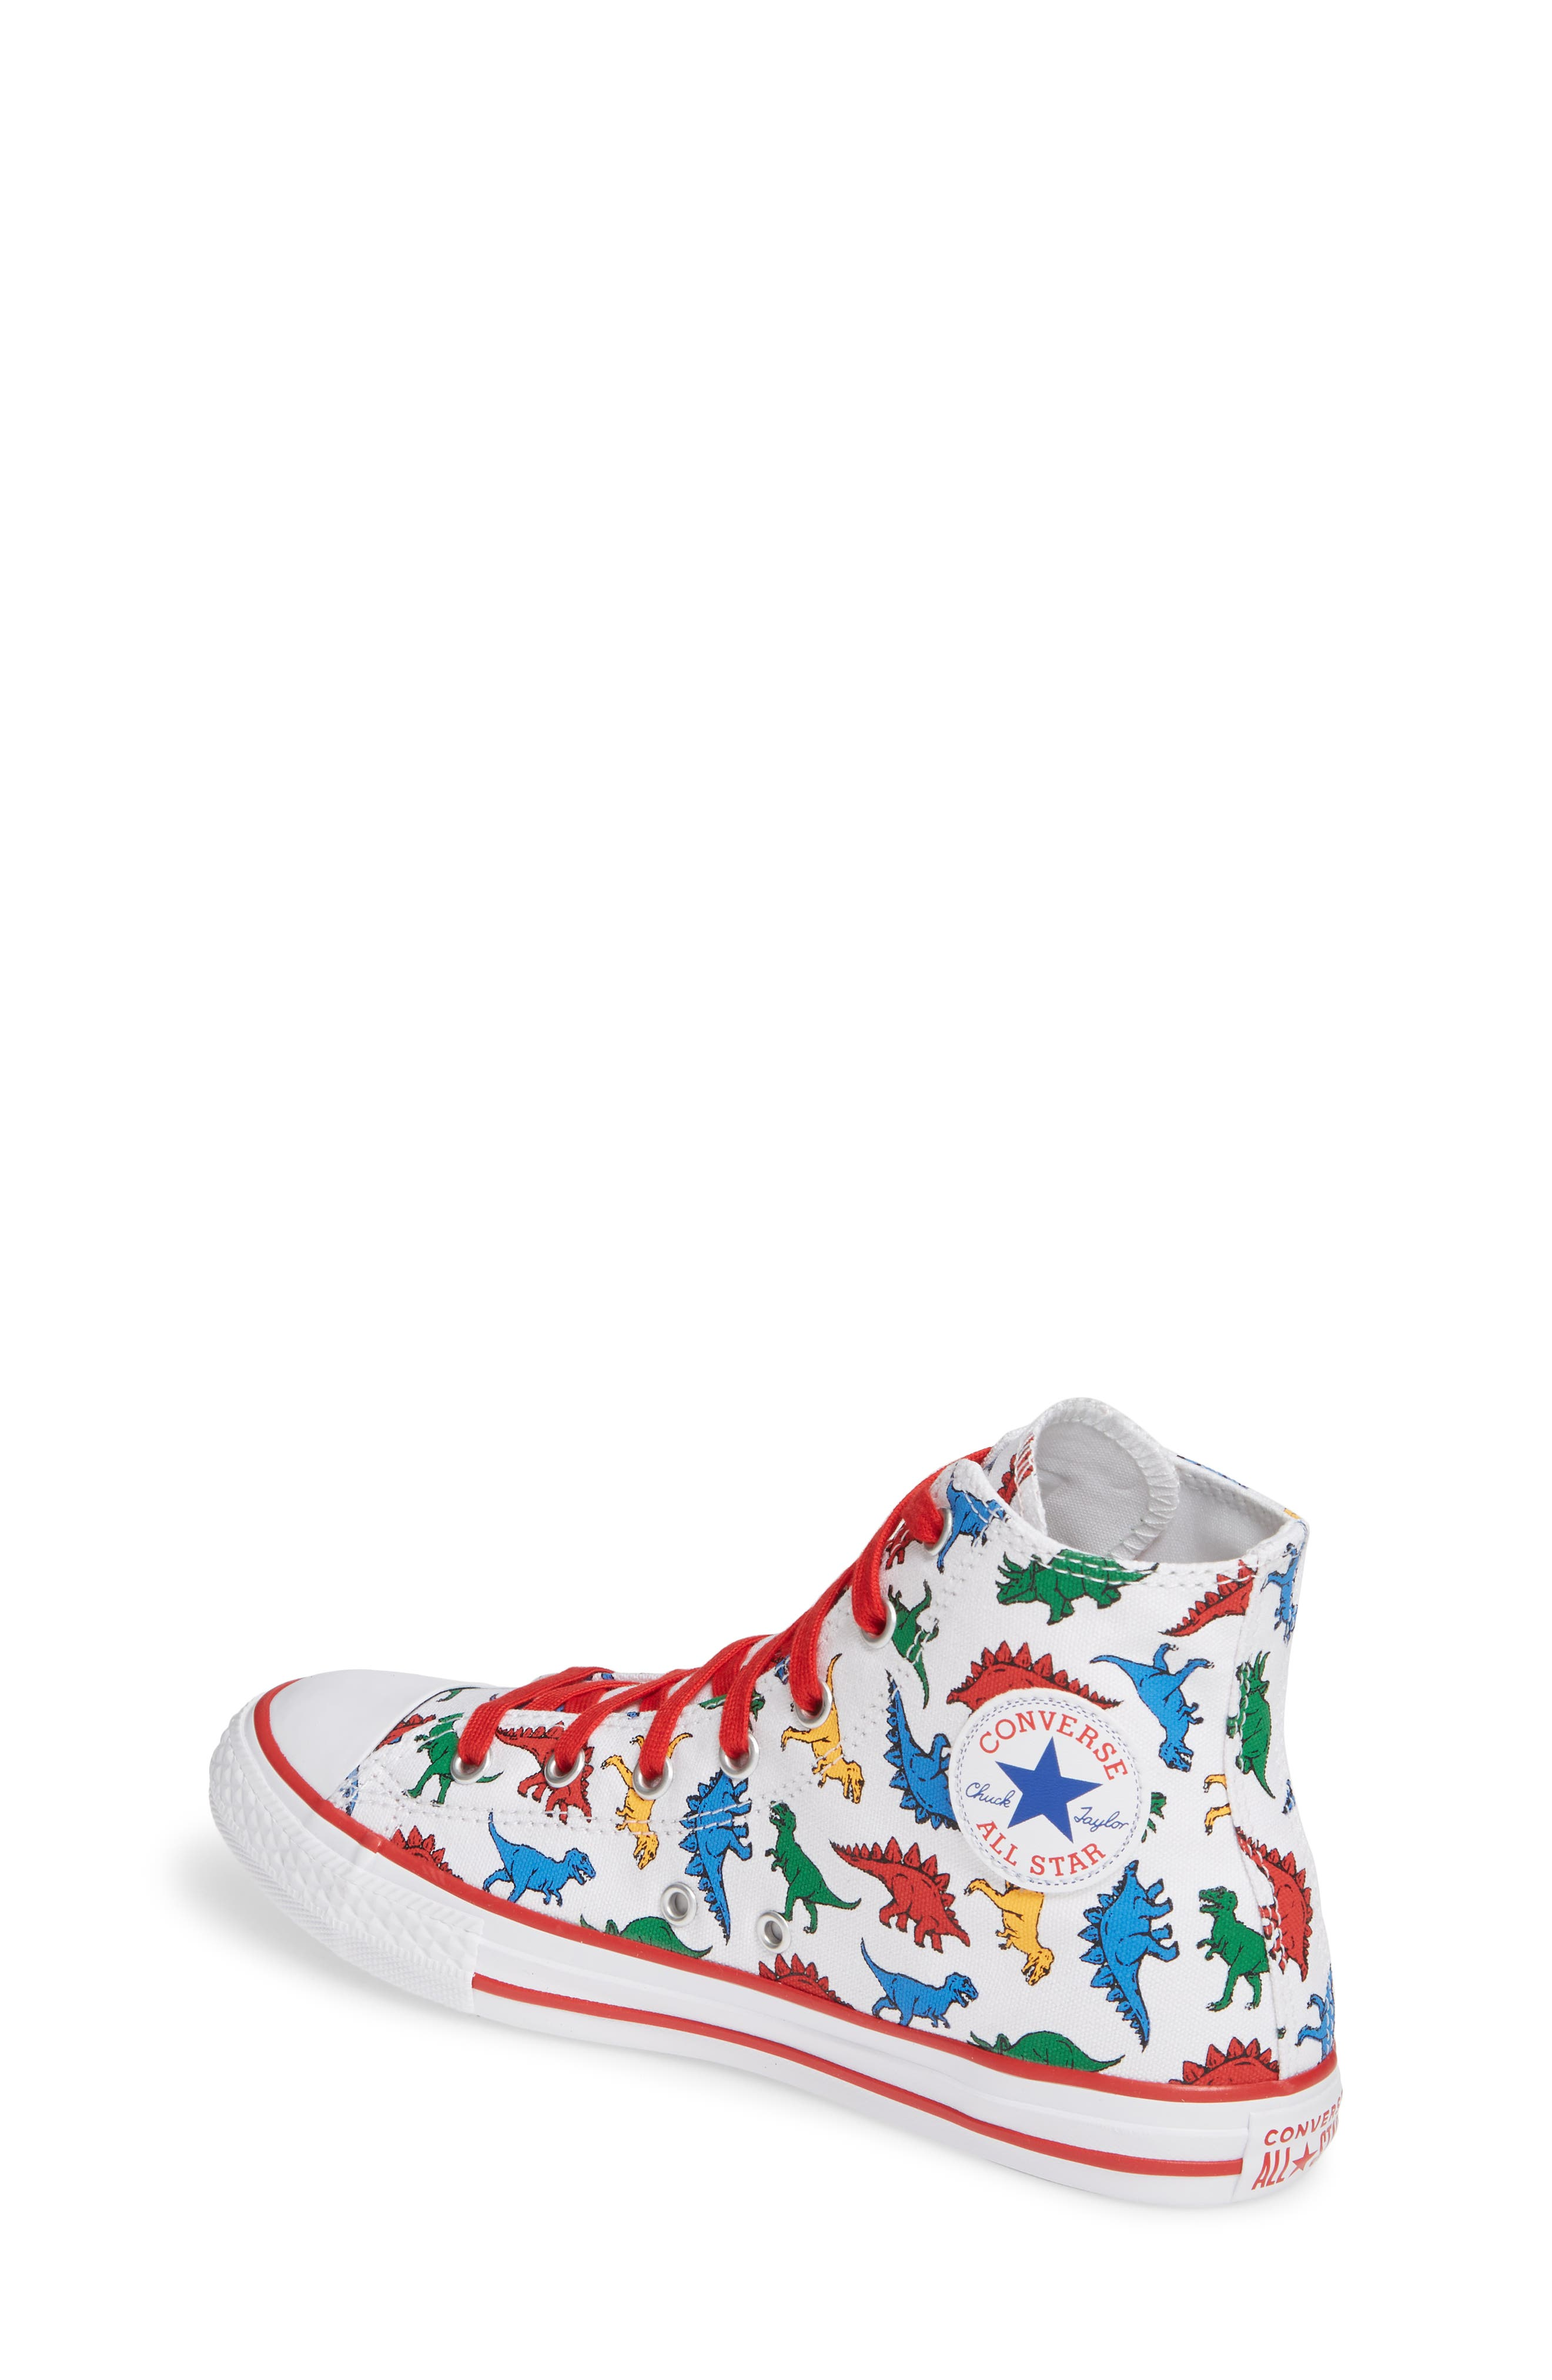 CONVERSE,                             Chuck Taylor<sup>®</sup> All Star<sup>®</sup> Dino High Top Sneaker,                             Alternate thumbnail 2, color,                             WHITE/ ENAMEL RED/ BLUE DINO